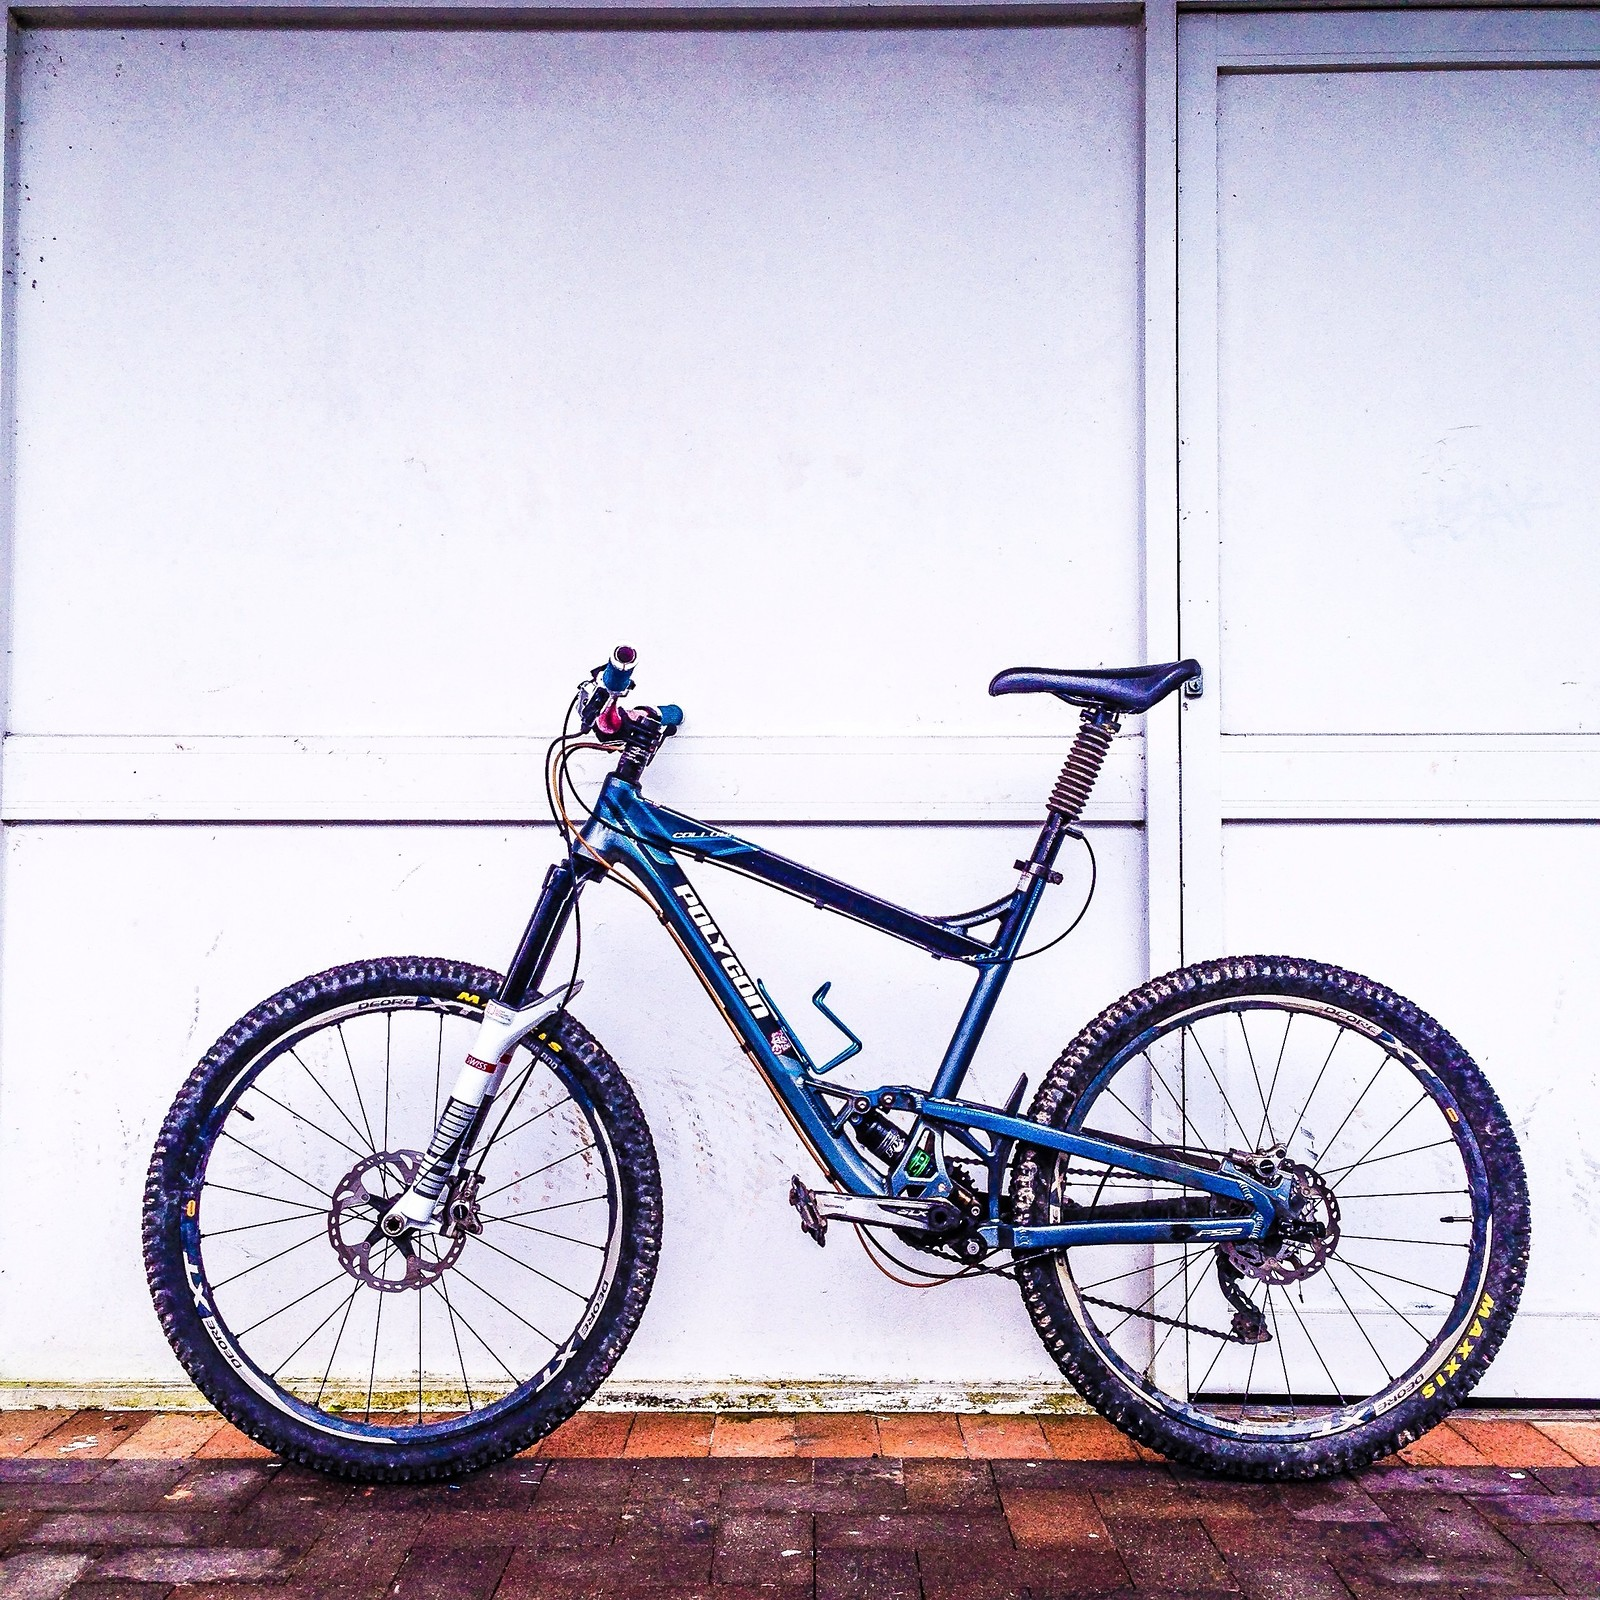 Our lead guides number 1 bike.